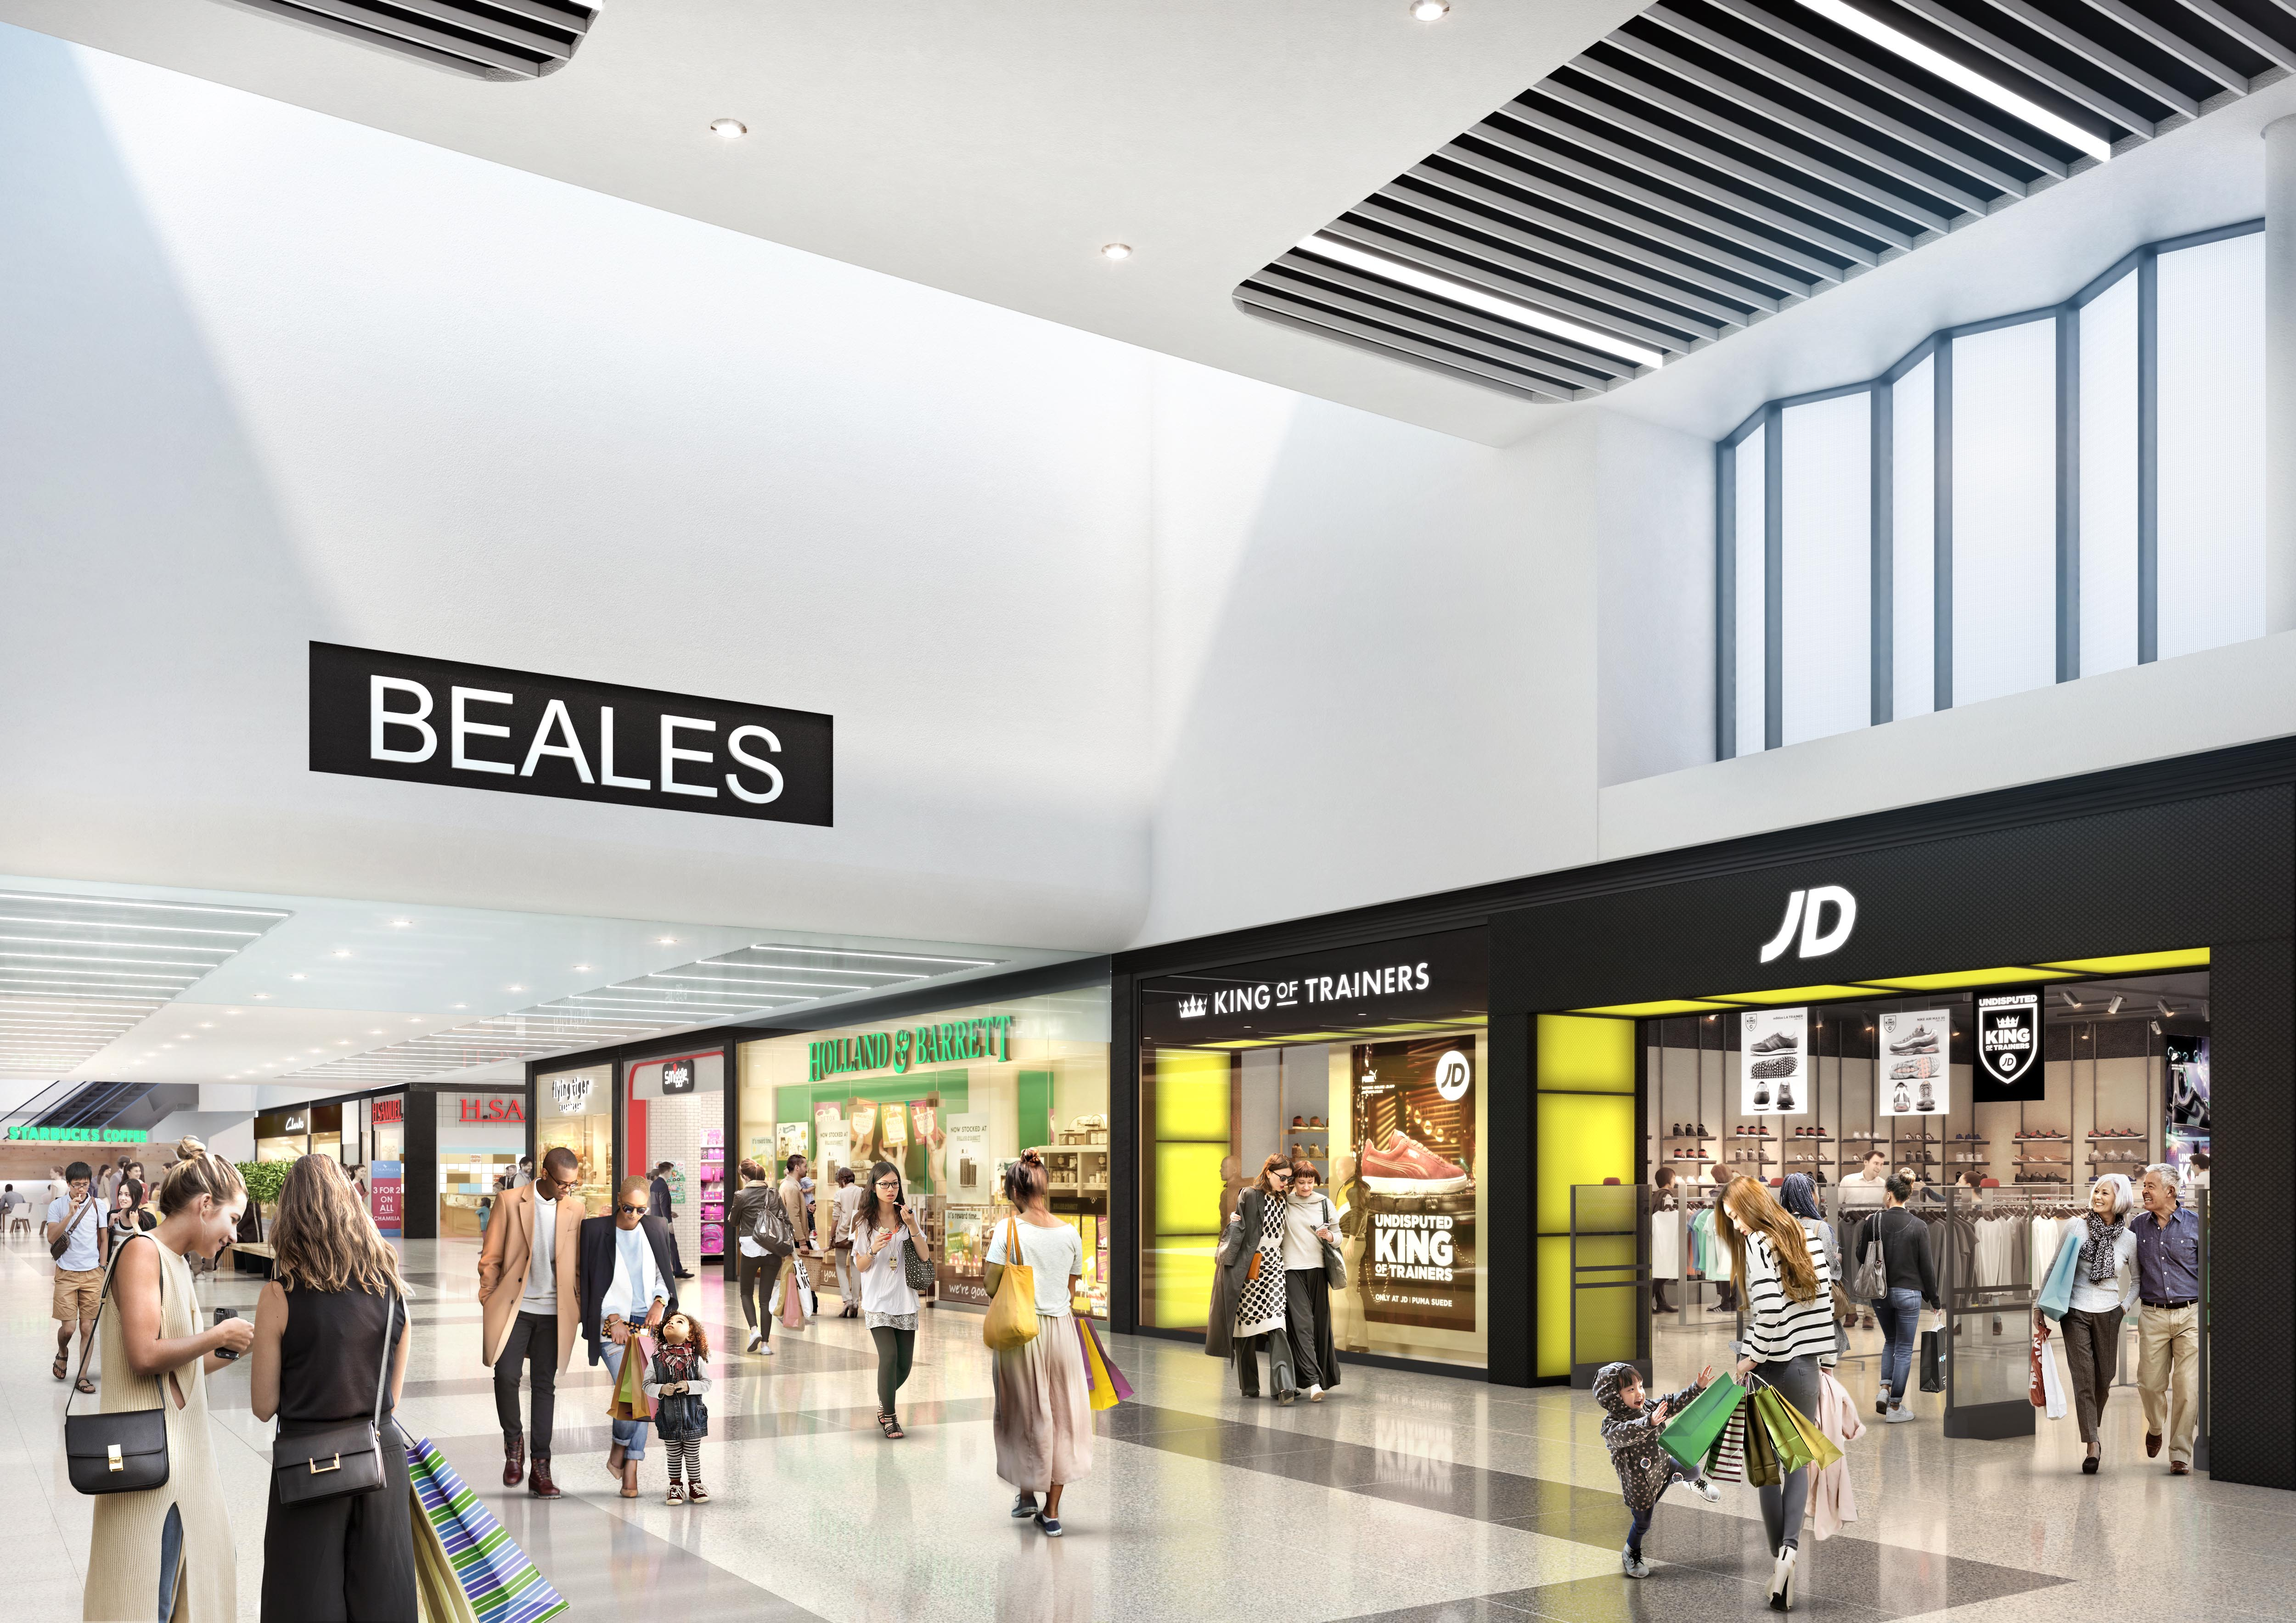 More new stores are set to move into the Dolphin Shopping Centre